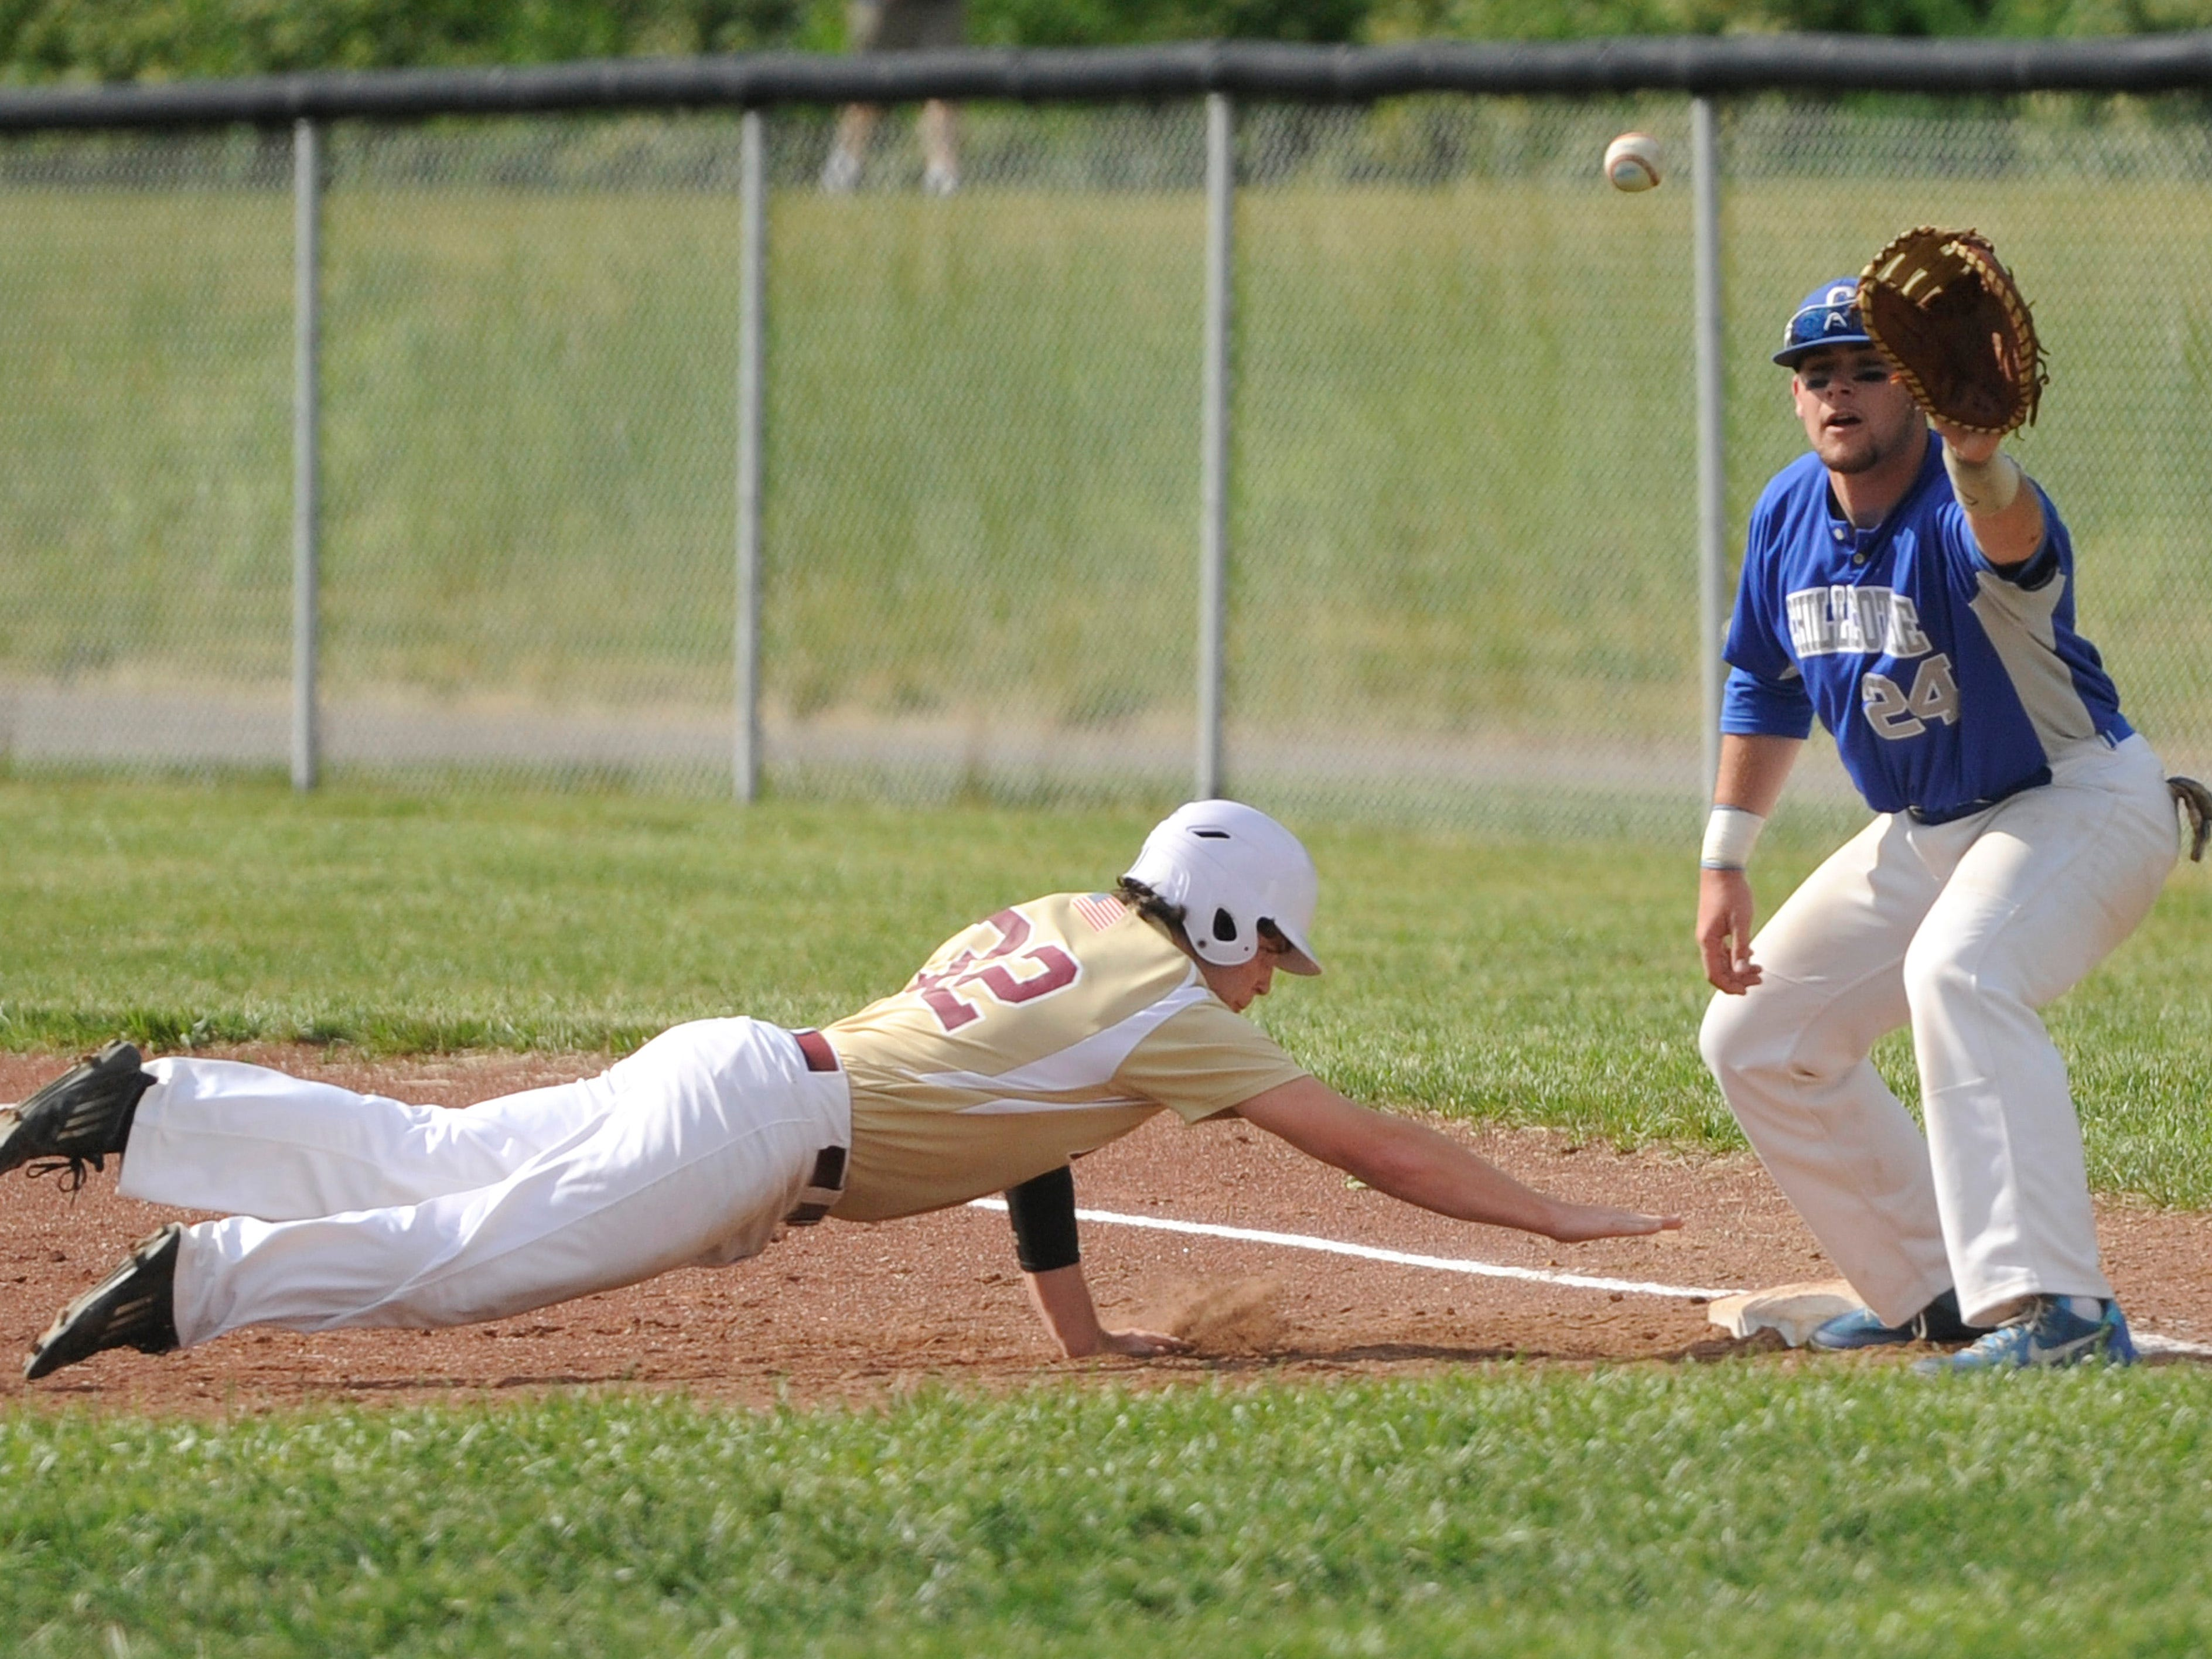 Chillicothe's Gage Jones holds a runner at first during the Cavaliers' 5-0 loss to Licking Heights in the Division I Sectional Semi-Final at Chillicothe on Tuesday.